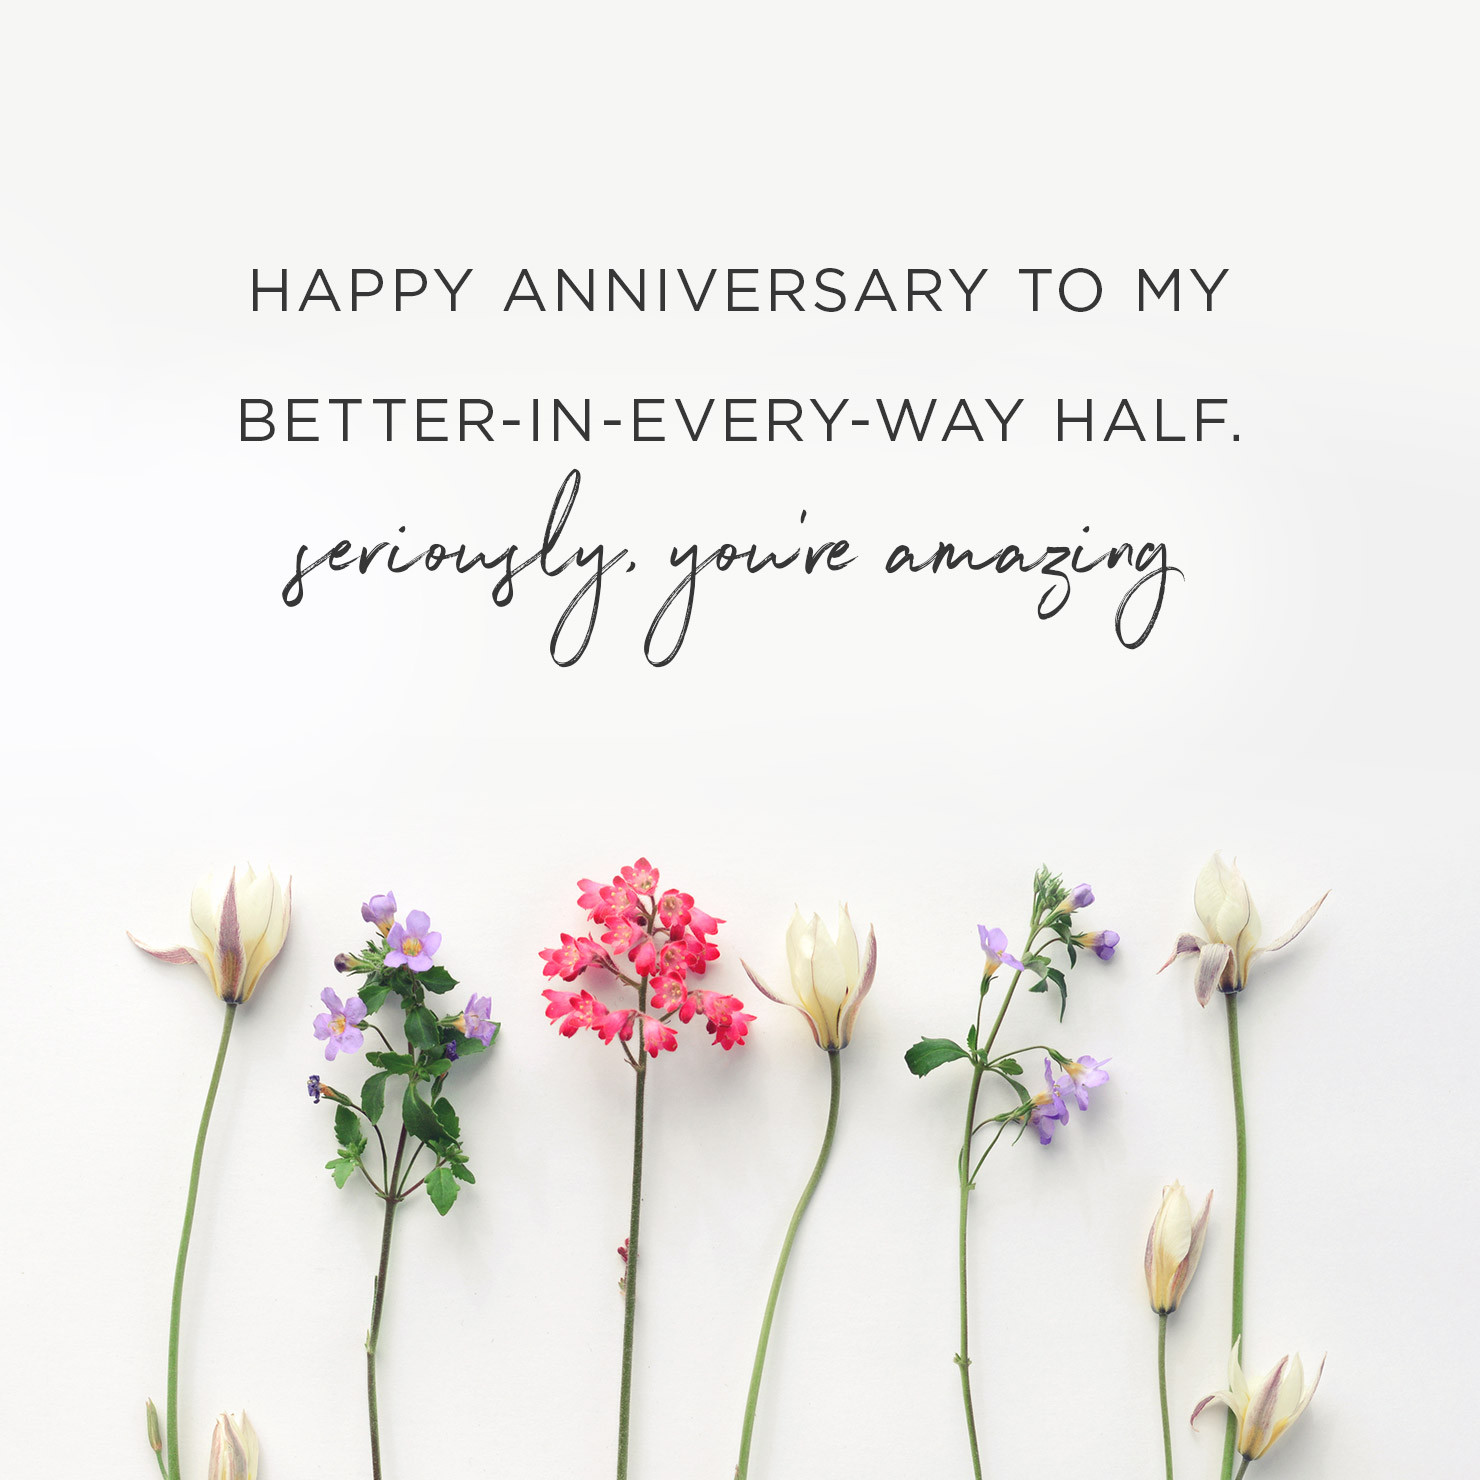 80 Heartfelt Happy Anniversary Messages with Images | Shutterfly